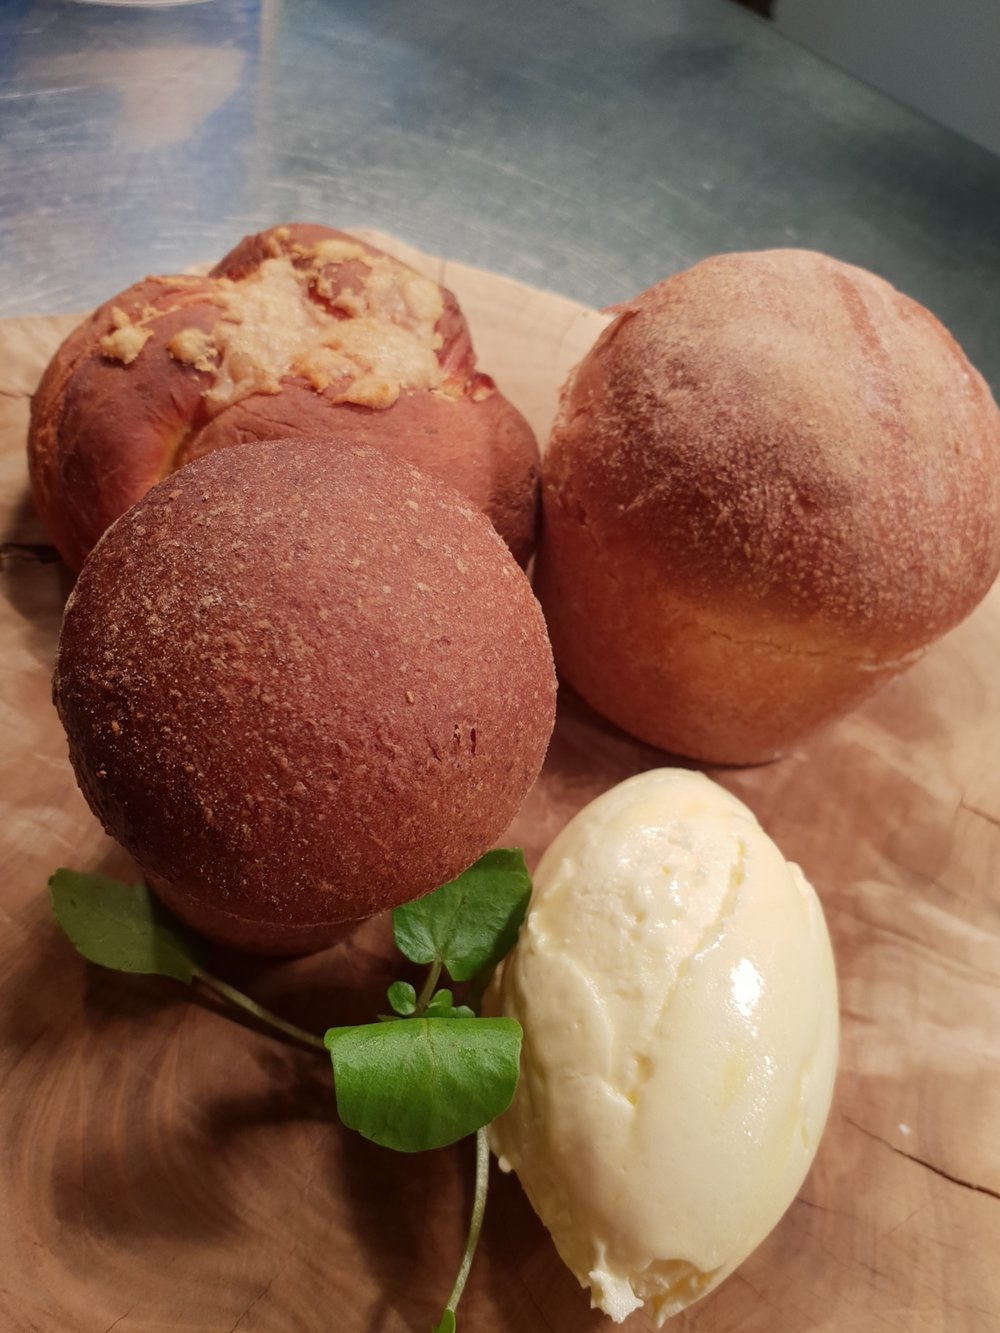 Homemade breads, whipped truffle butter